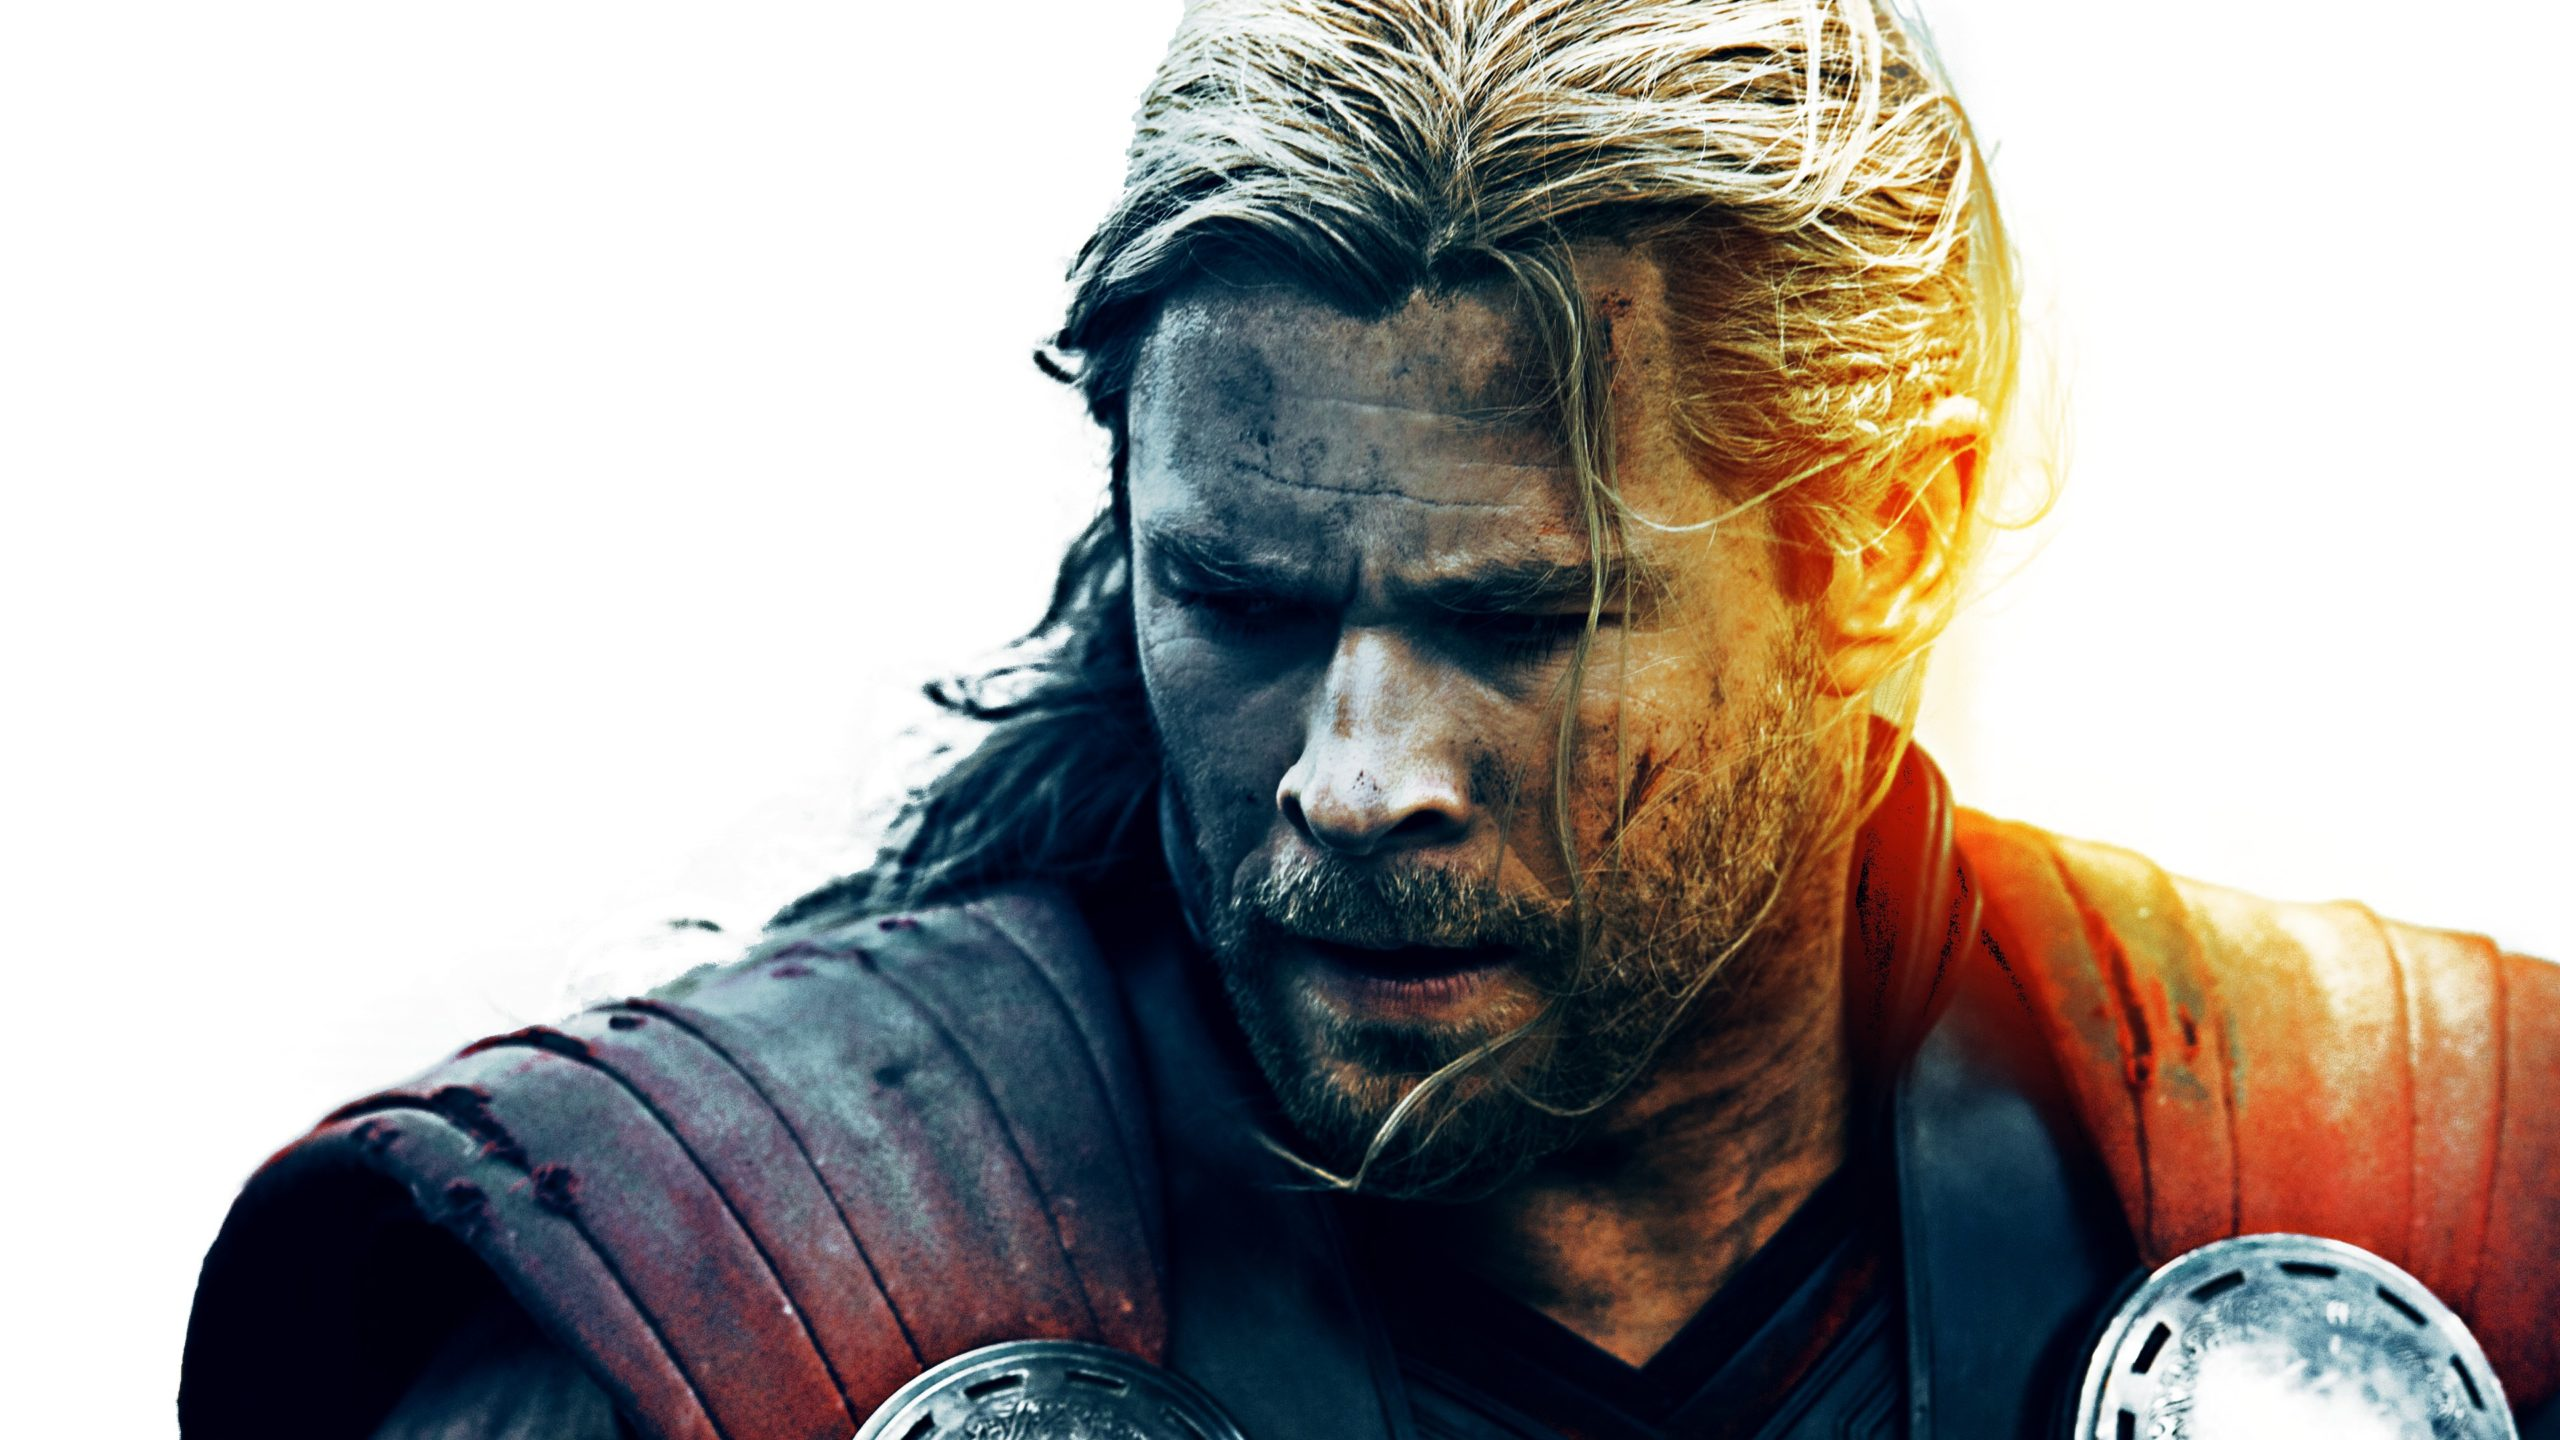 3d Thor Movie Hammer Wallpapers Hd: Thor 3D Wallpapers